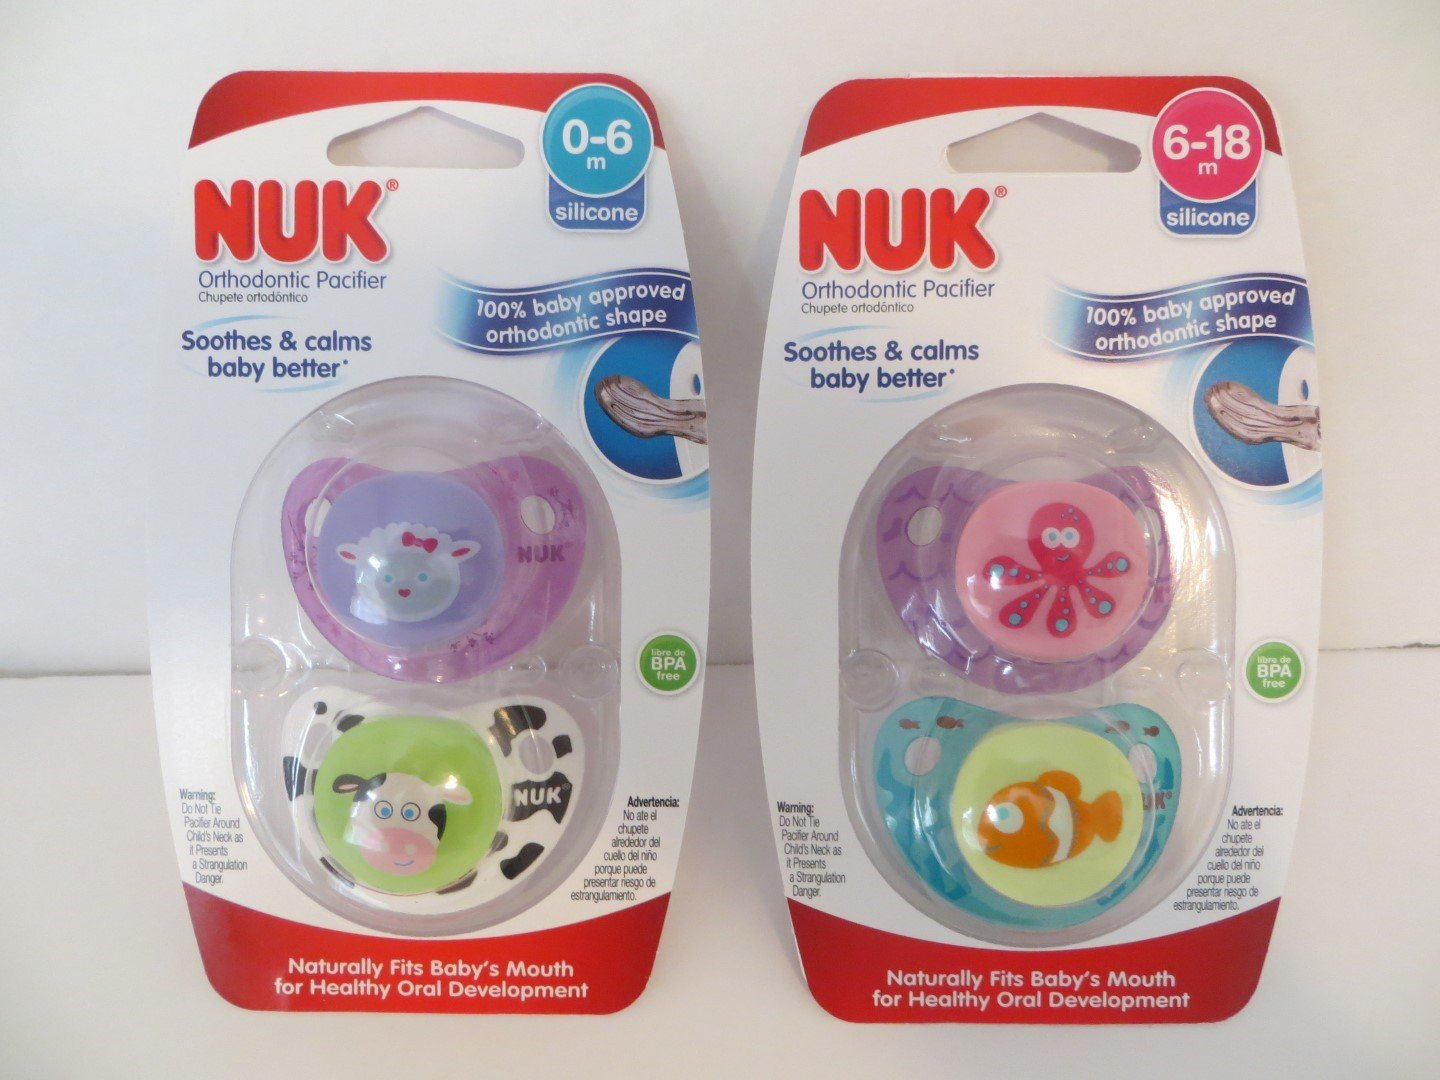 Amazon.com : Nuk Orthodontic Pacifiers 0-6mo PLUS 6-18 mo ...